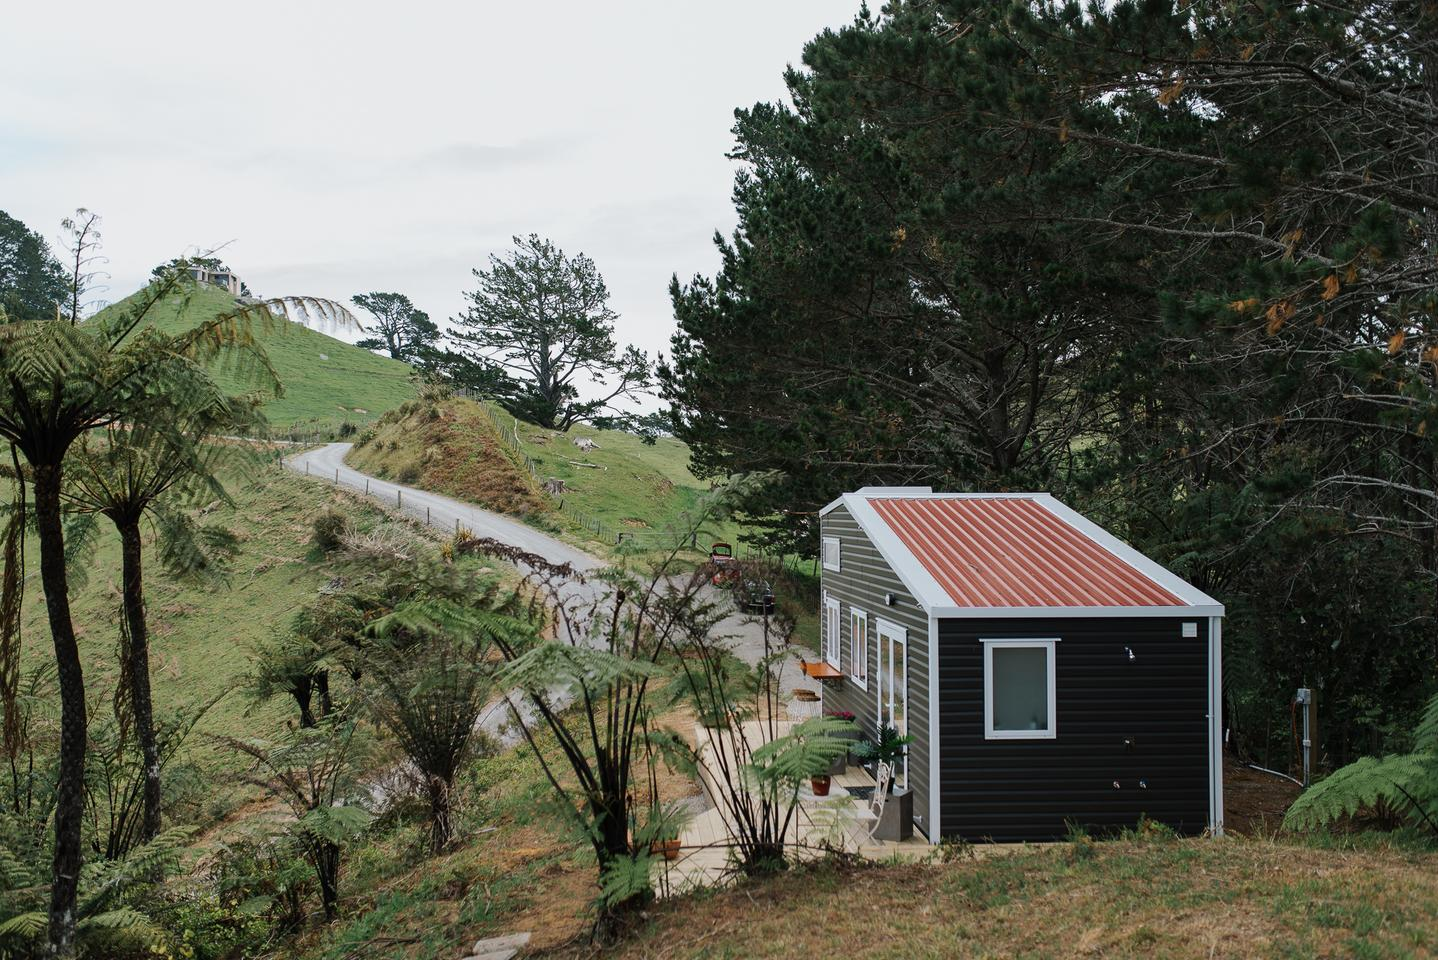 The Cherry Picker Tiny House is located in a picturesque spot overlooking the ocean in New Zealand